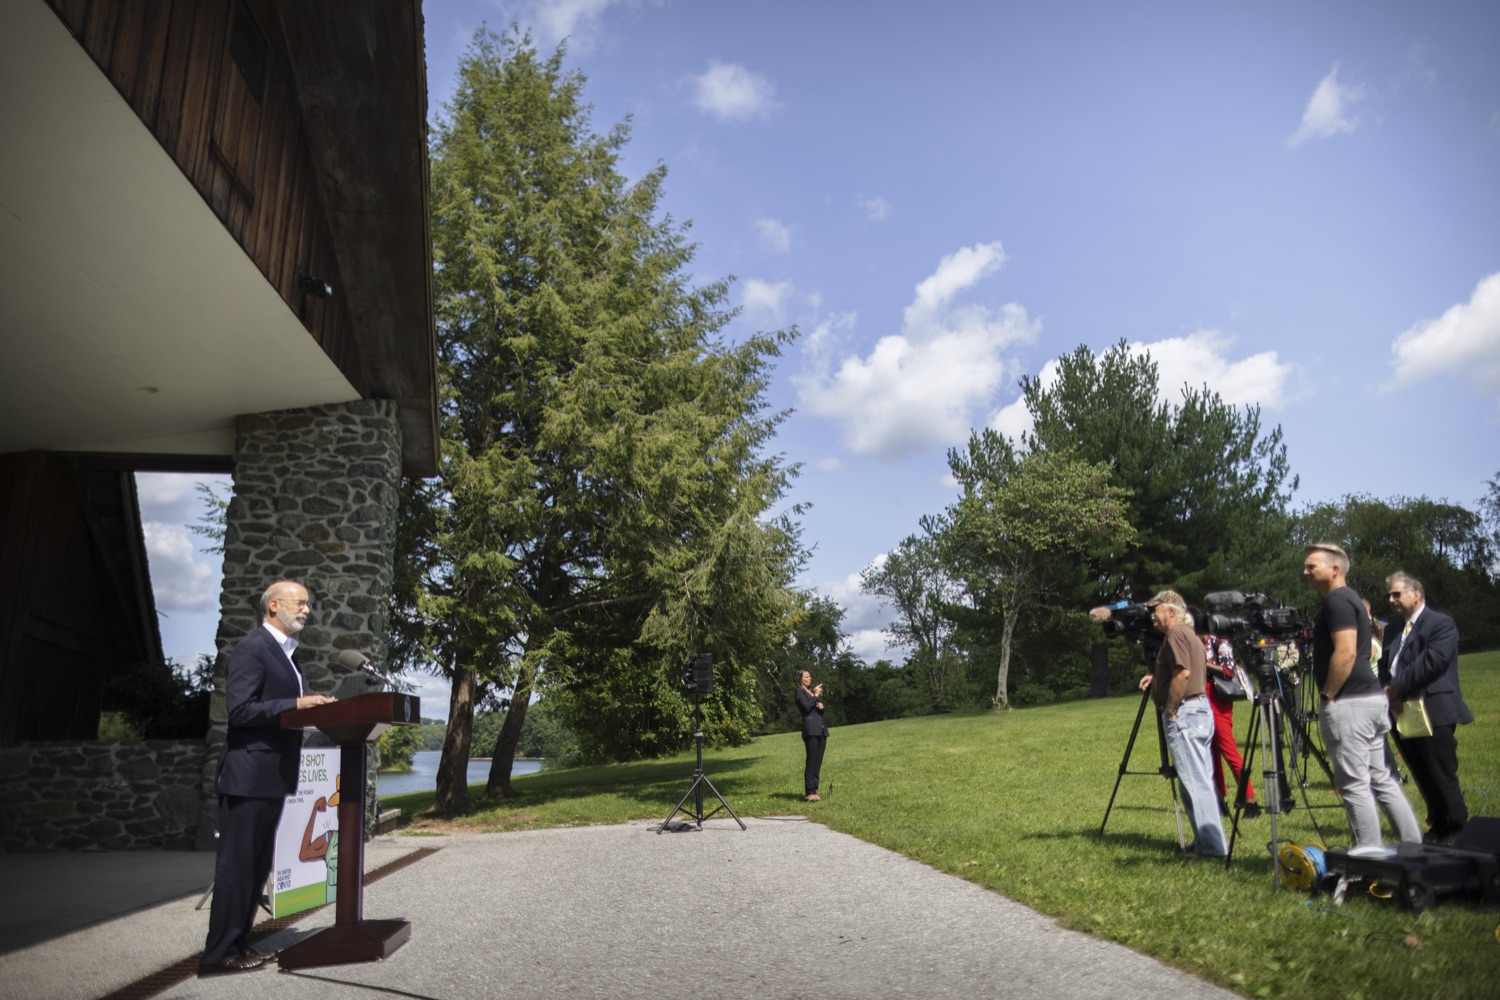 """<a href=""""https://filesource.wostreaming.net/commonwealthofpa/photo/19111_gov_parkVaccines_dz_017.jpg"""" target=""""_blank"""">⇣Download Photo<br></a>Pennsylvania Governor Tom Wolf speaking with the press.  Governor Tom Wolf today announced that the Department of Health (DOH) and Department of Conservation and Natural Resources (DCNR) are partnering to hold COVID-19 vaccine clinics at five state parks across the commonwealth to help expand access to the COVID-19 vaccine.  Harrisburg, PA -- September 10, 2021"""